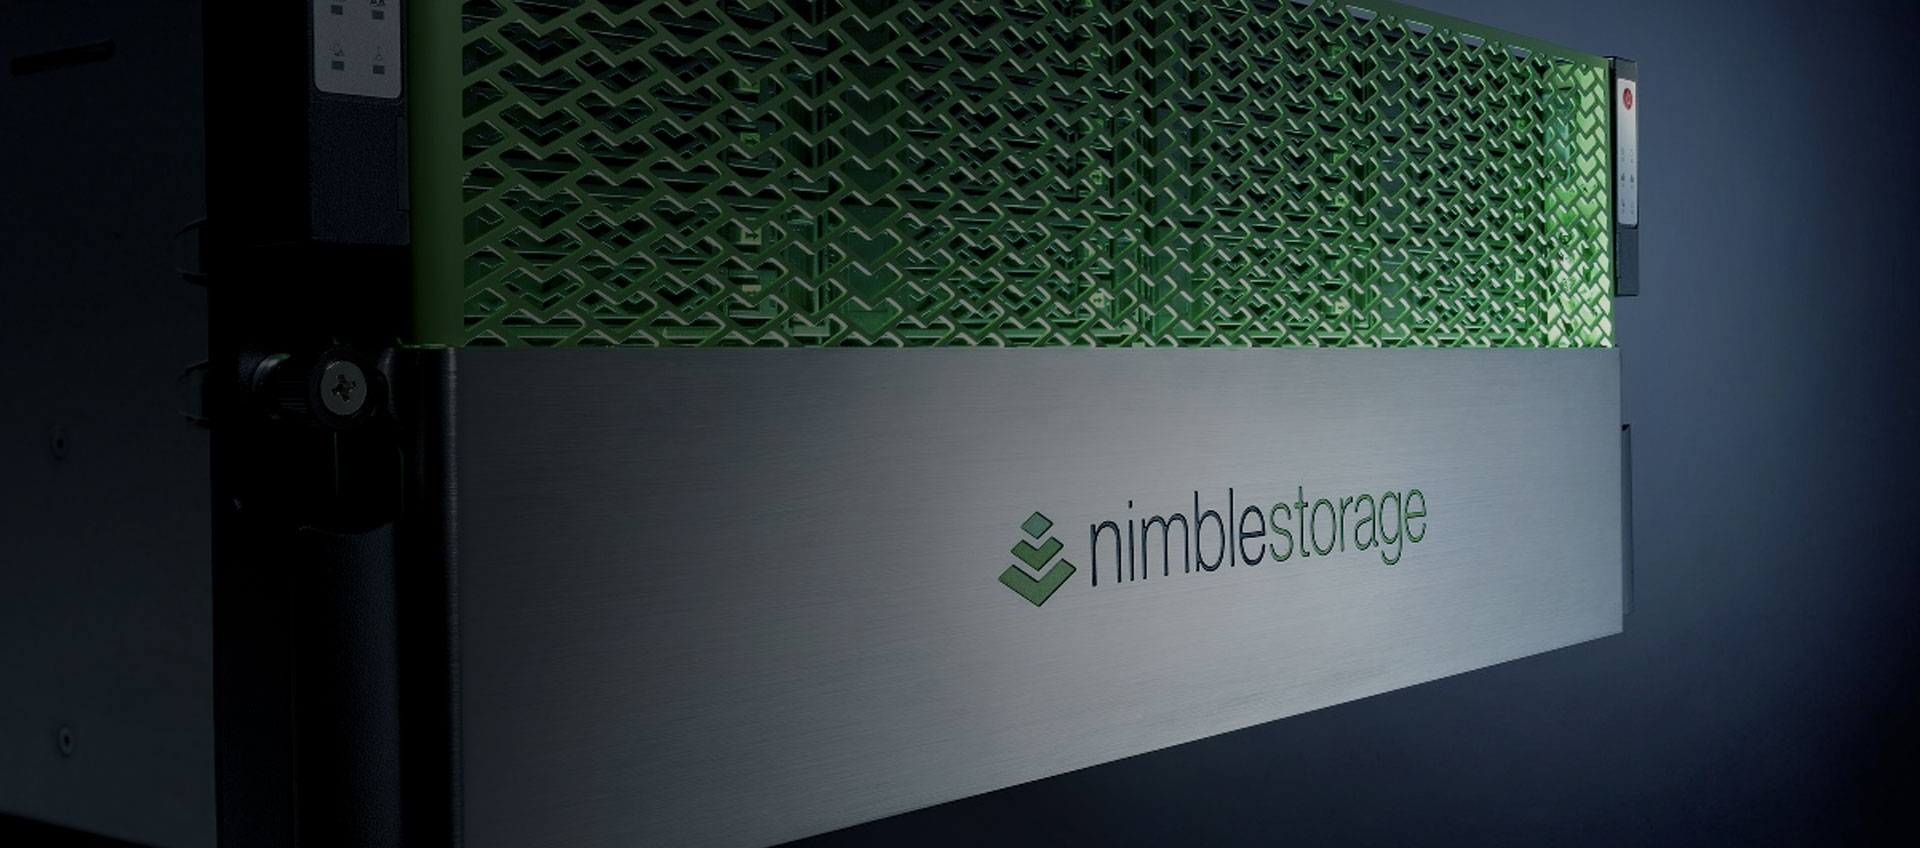 A Nimble storage solution